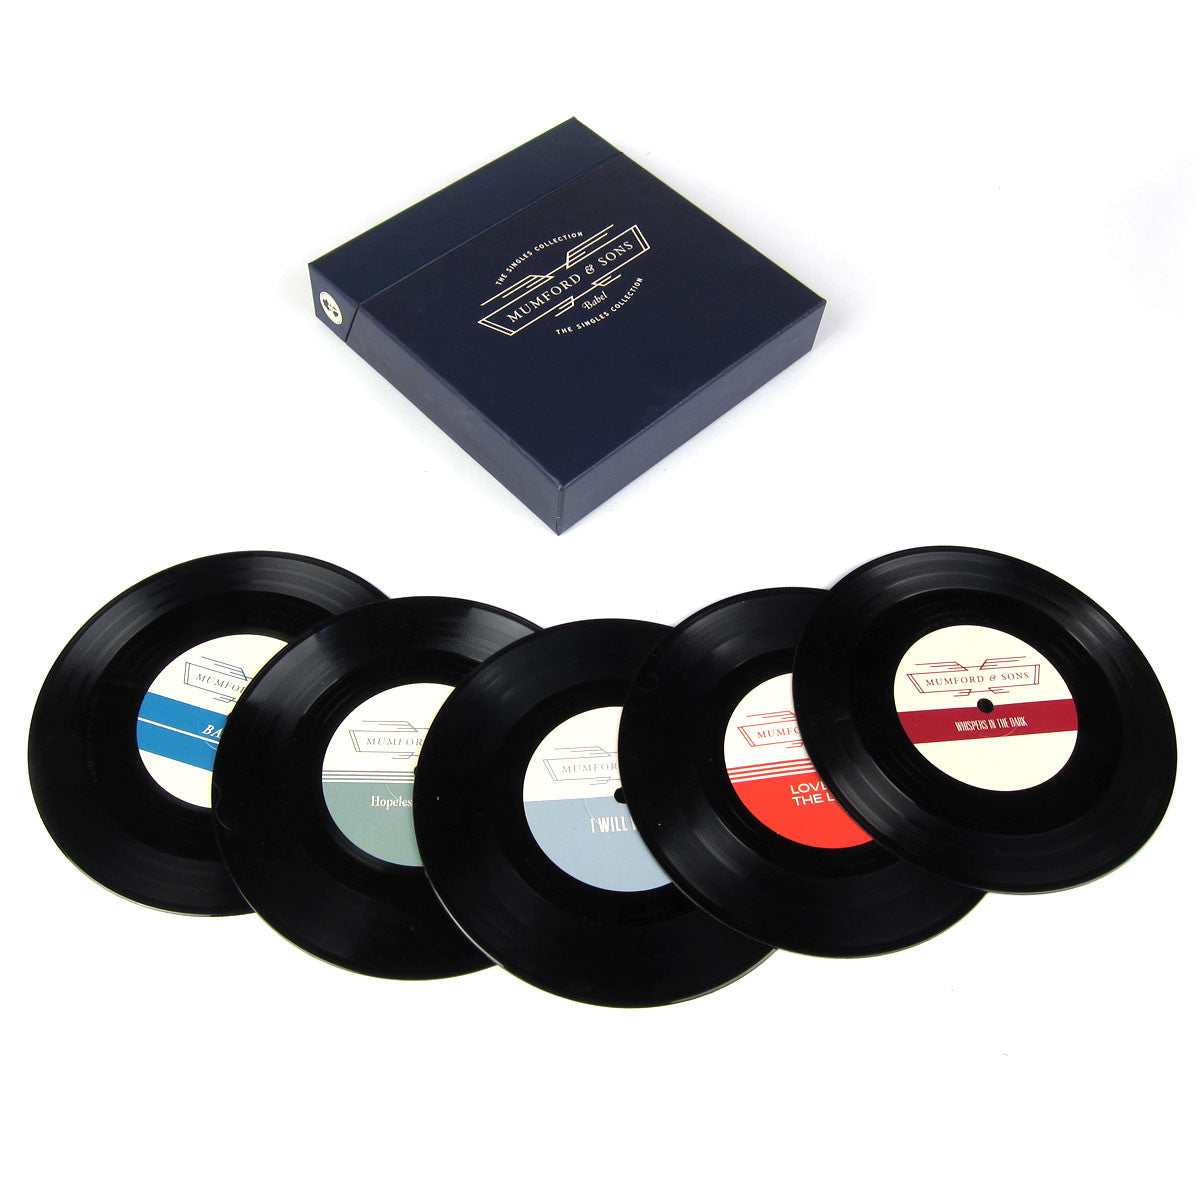 "Mumford & Sons: Babel - The Singles Collection Vinyl 7"" Boxset"